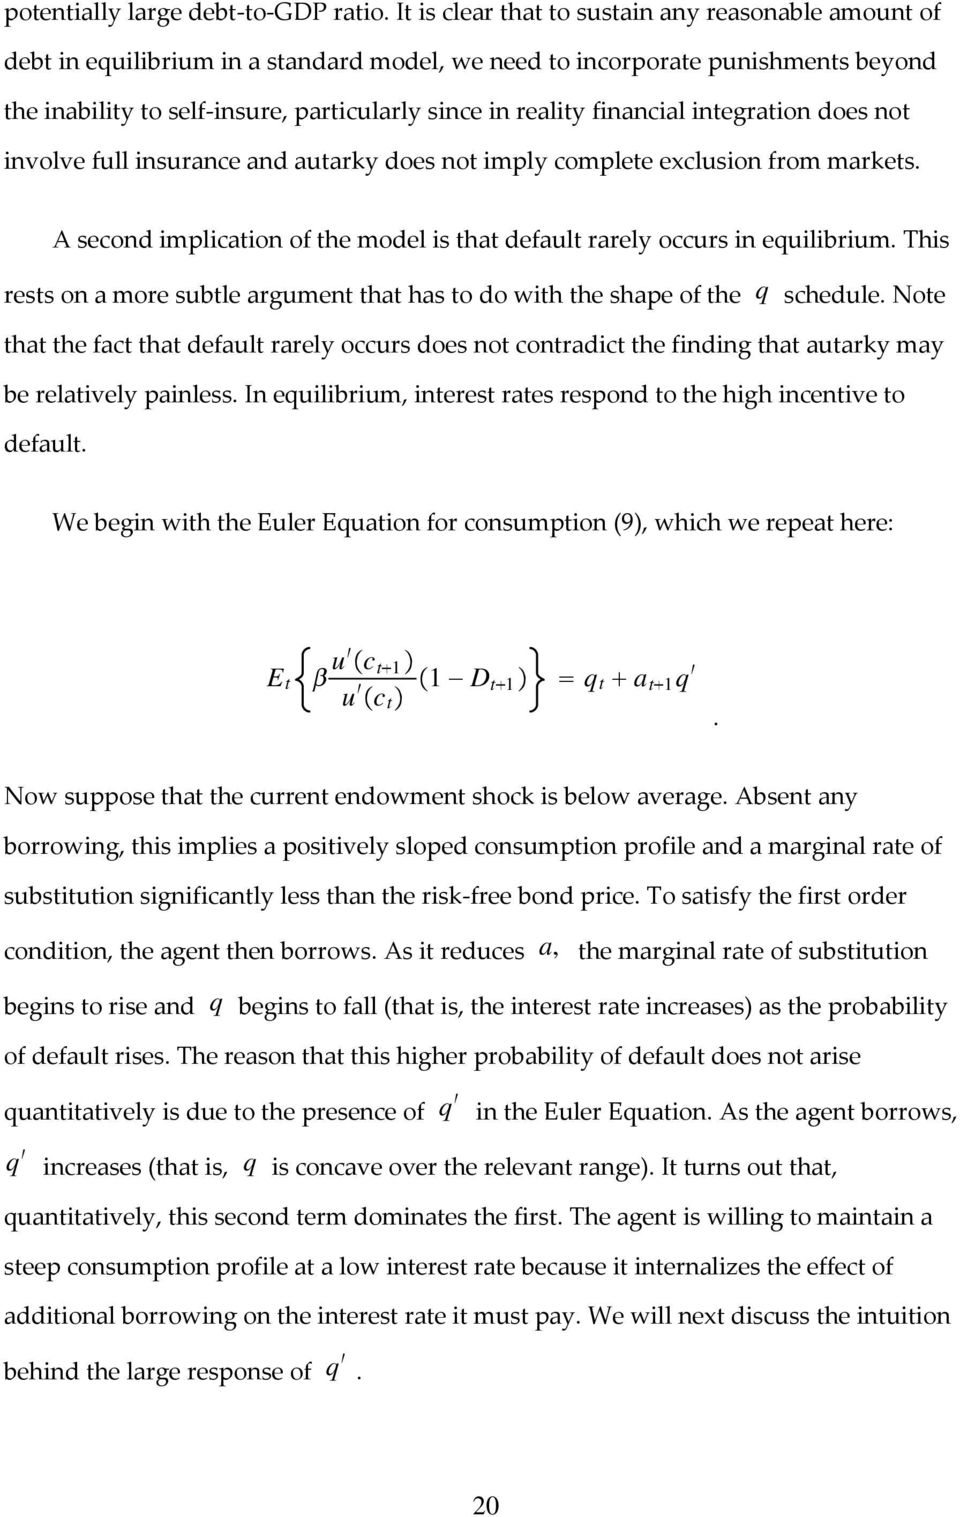 financial integration does not involve full insurance and autarky does not imply complete exclusion from markets. A second implication of the model is that default rarely occurs in equilibrium.